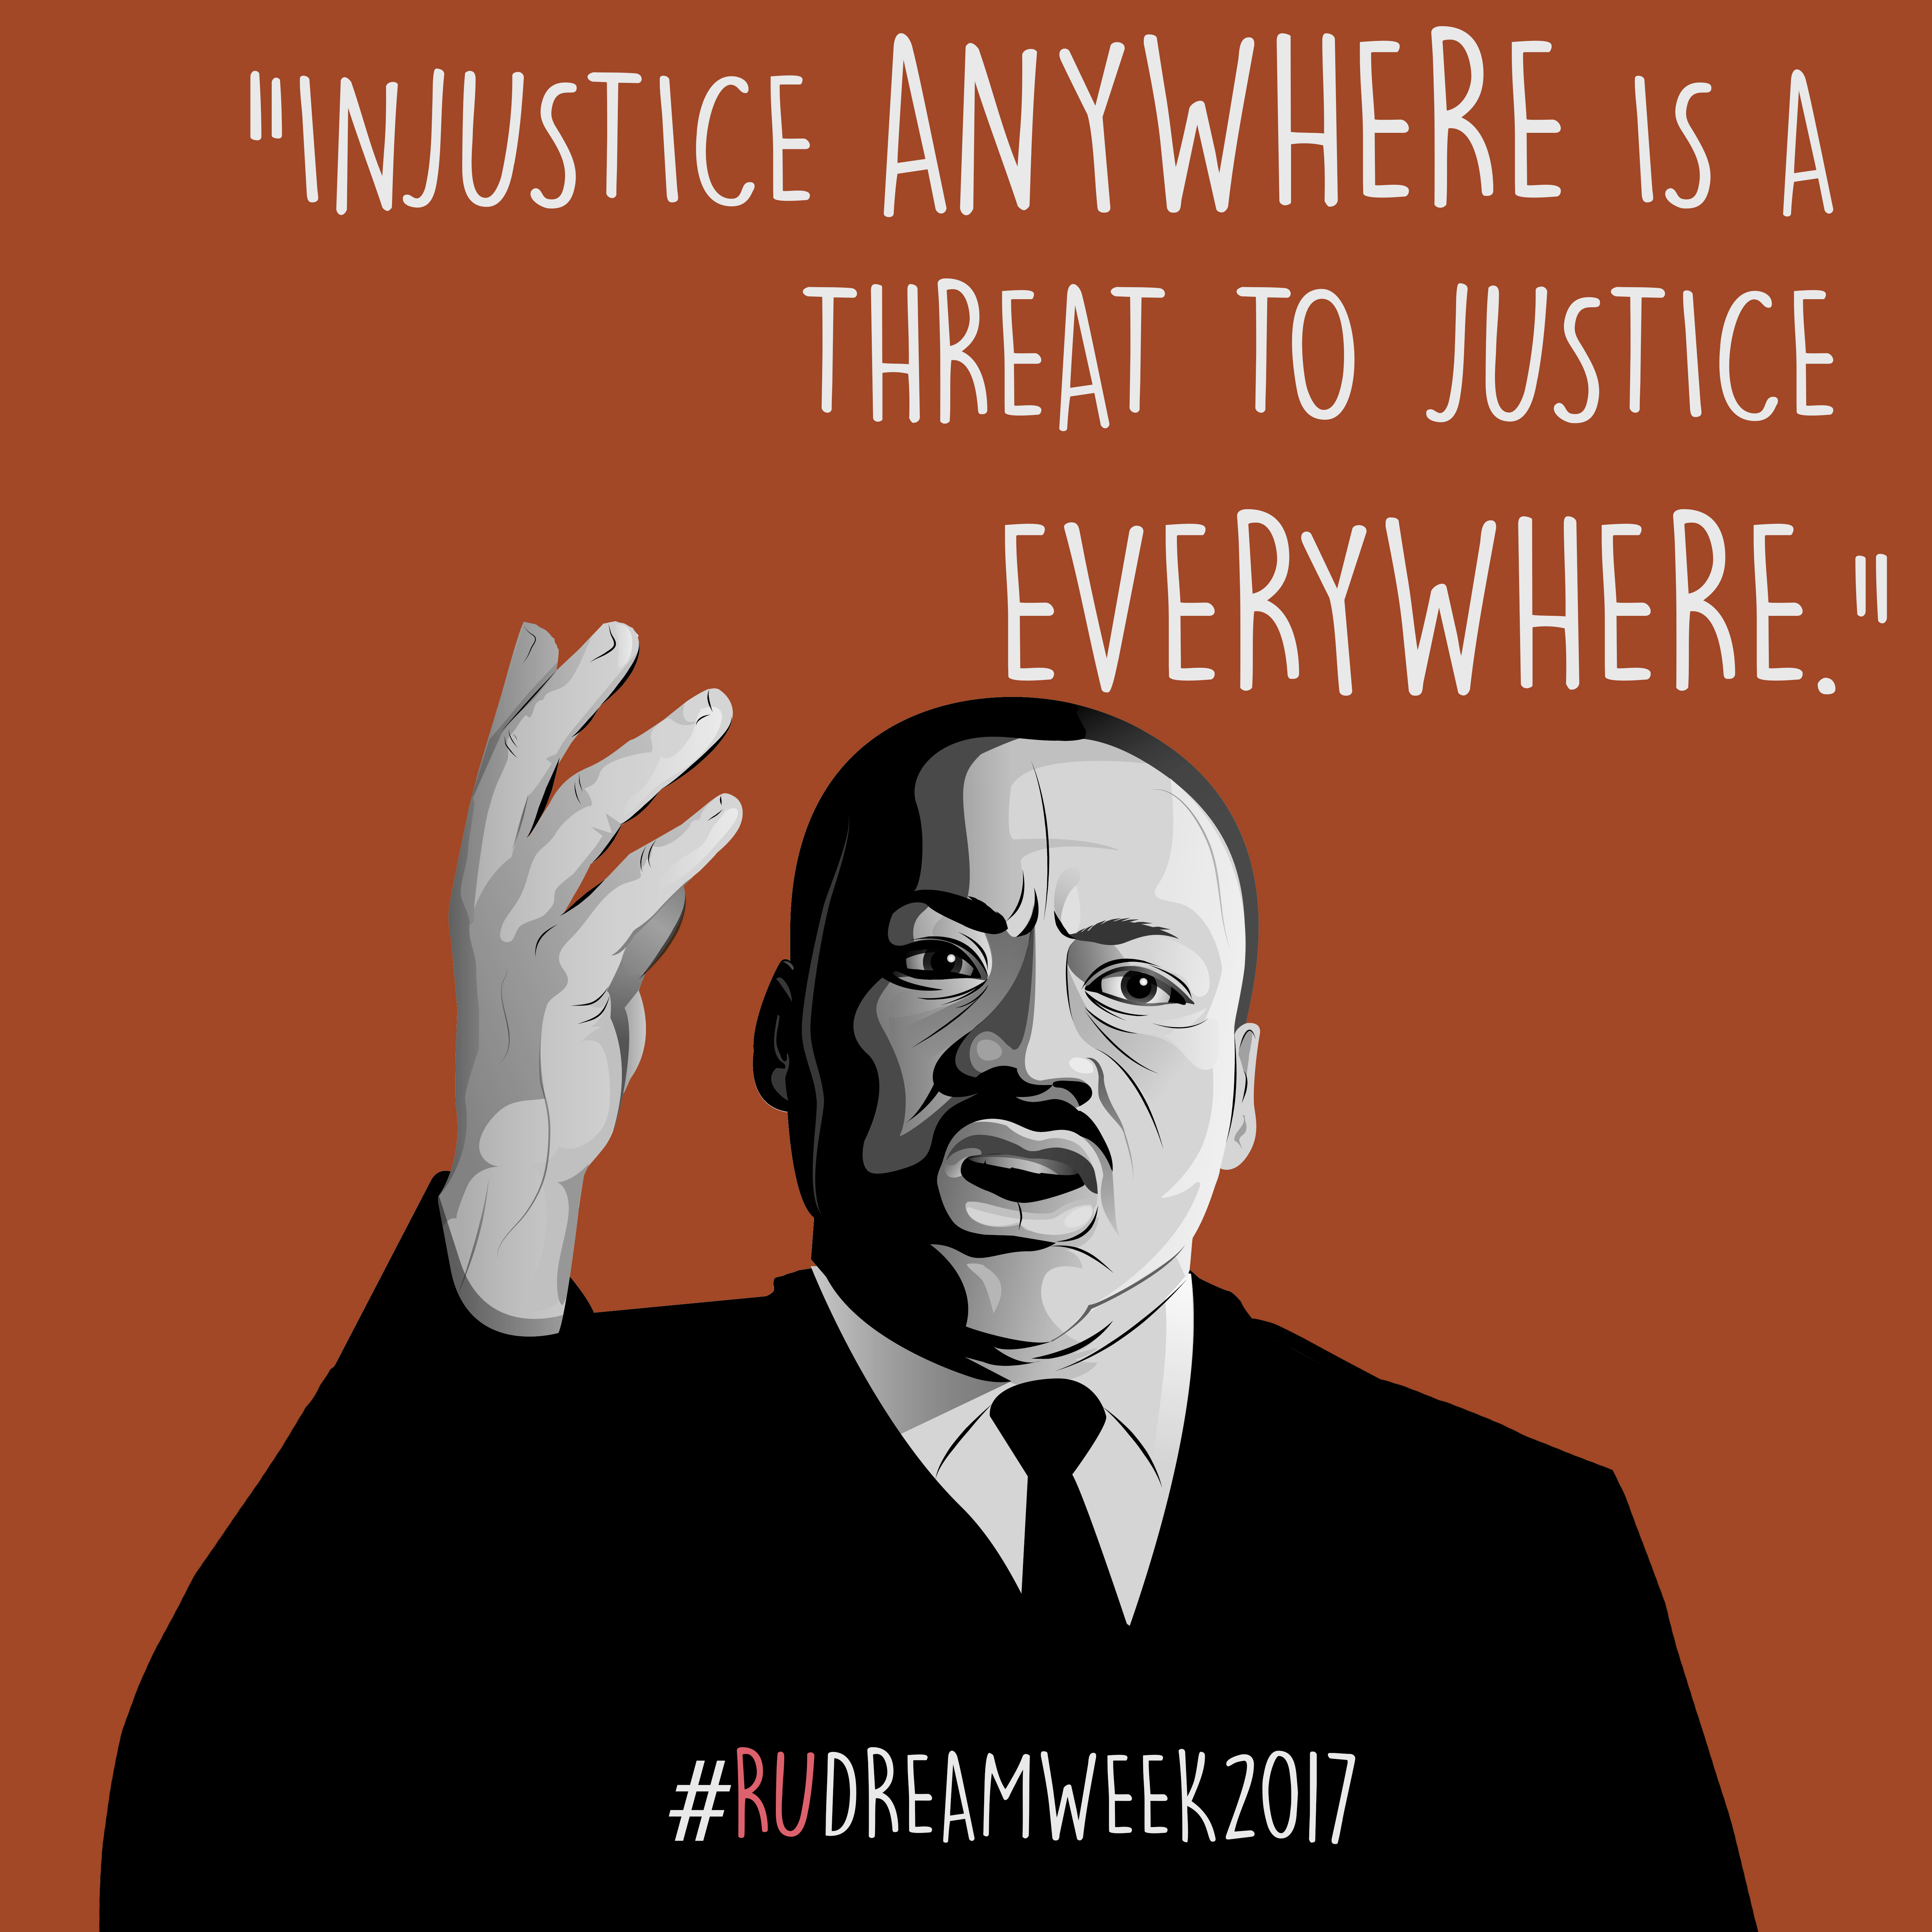 injustice anywhere is a threat to justice everywhere essay how doctoral dissertation defense questions